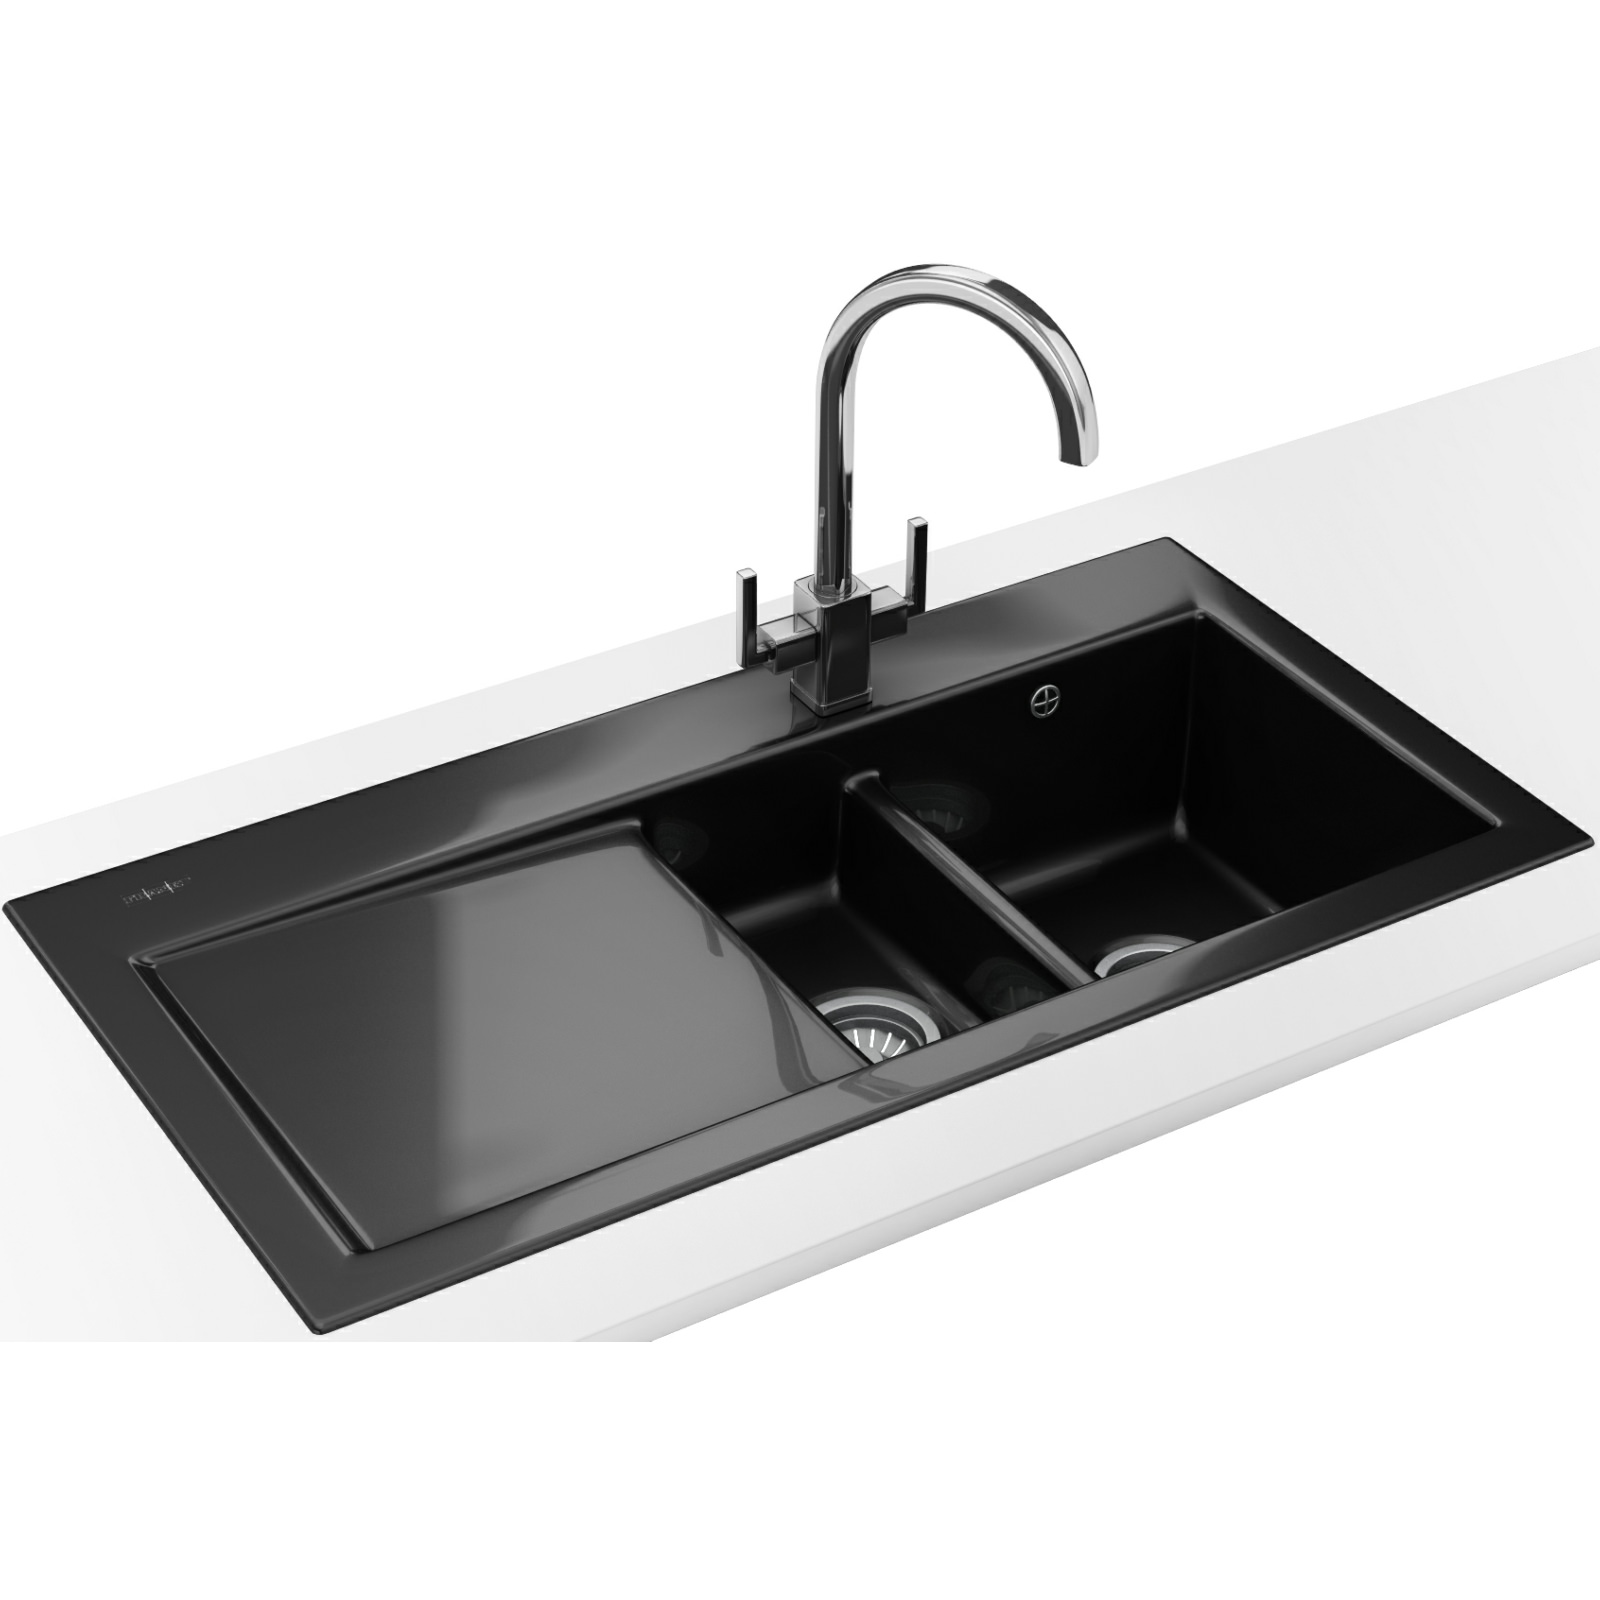 Franke Sinks And Taps : Franke Mythos MTK 651 DP - Ceramic Black Left Drainer Sink And Tap